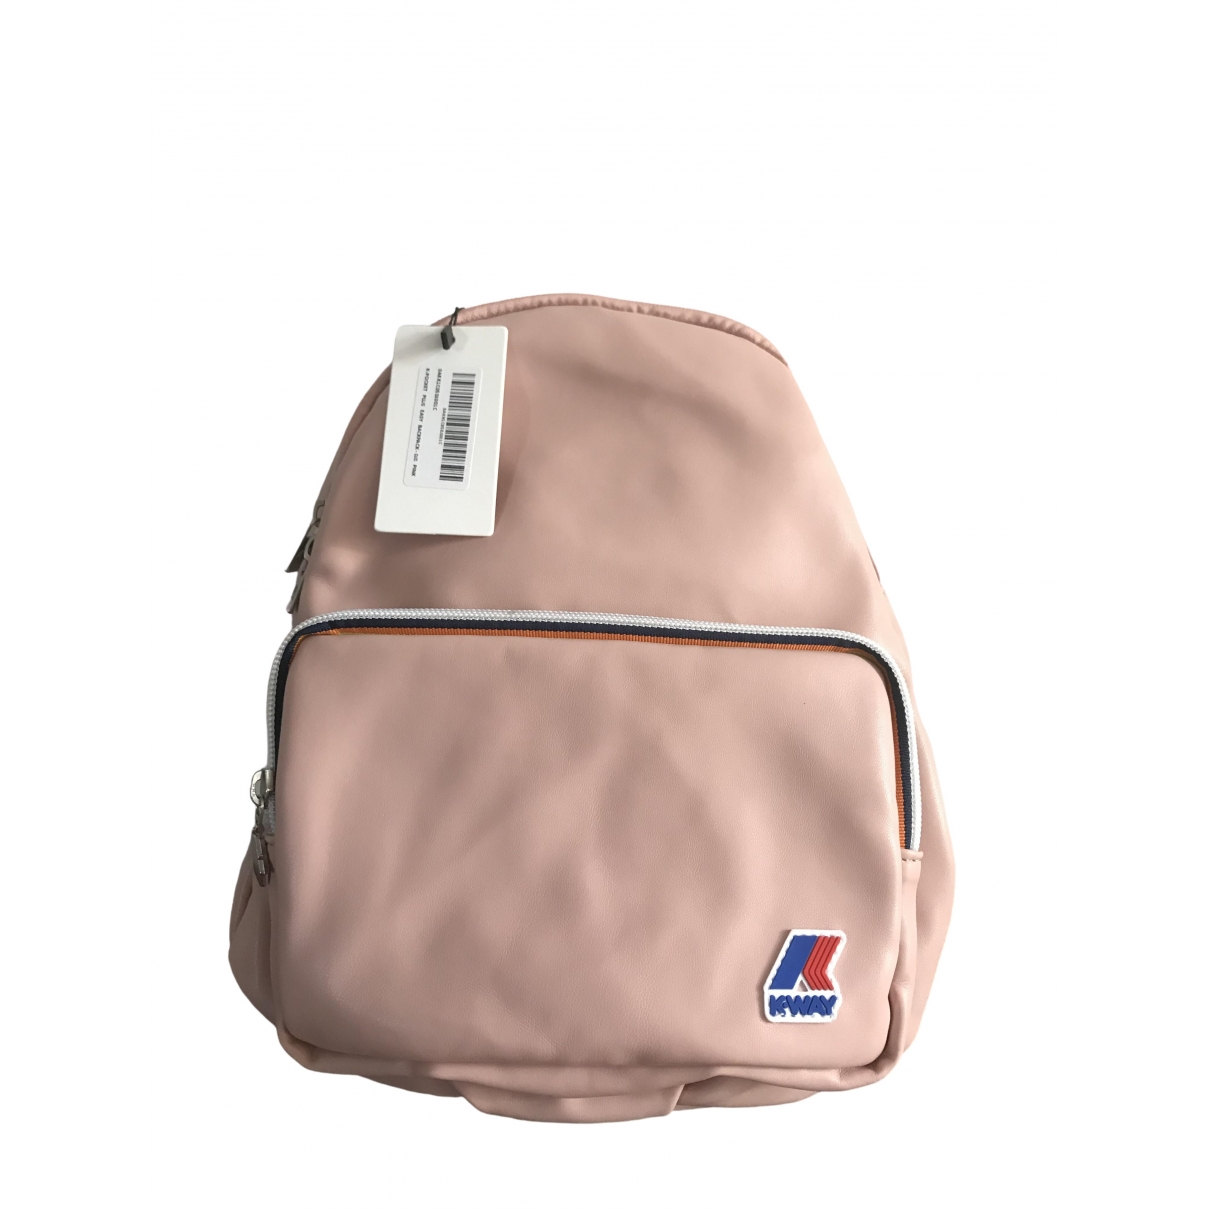 K-way \N Pink Leather backpack for Women \N